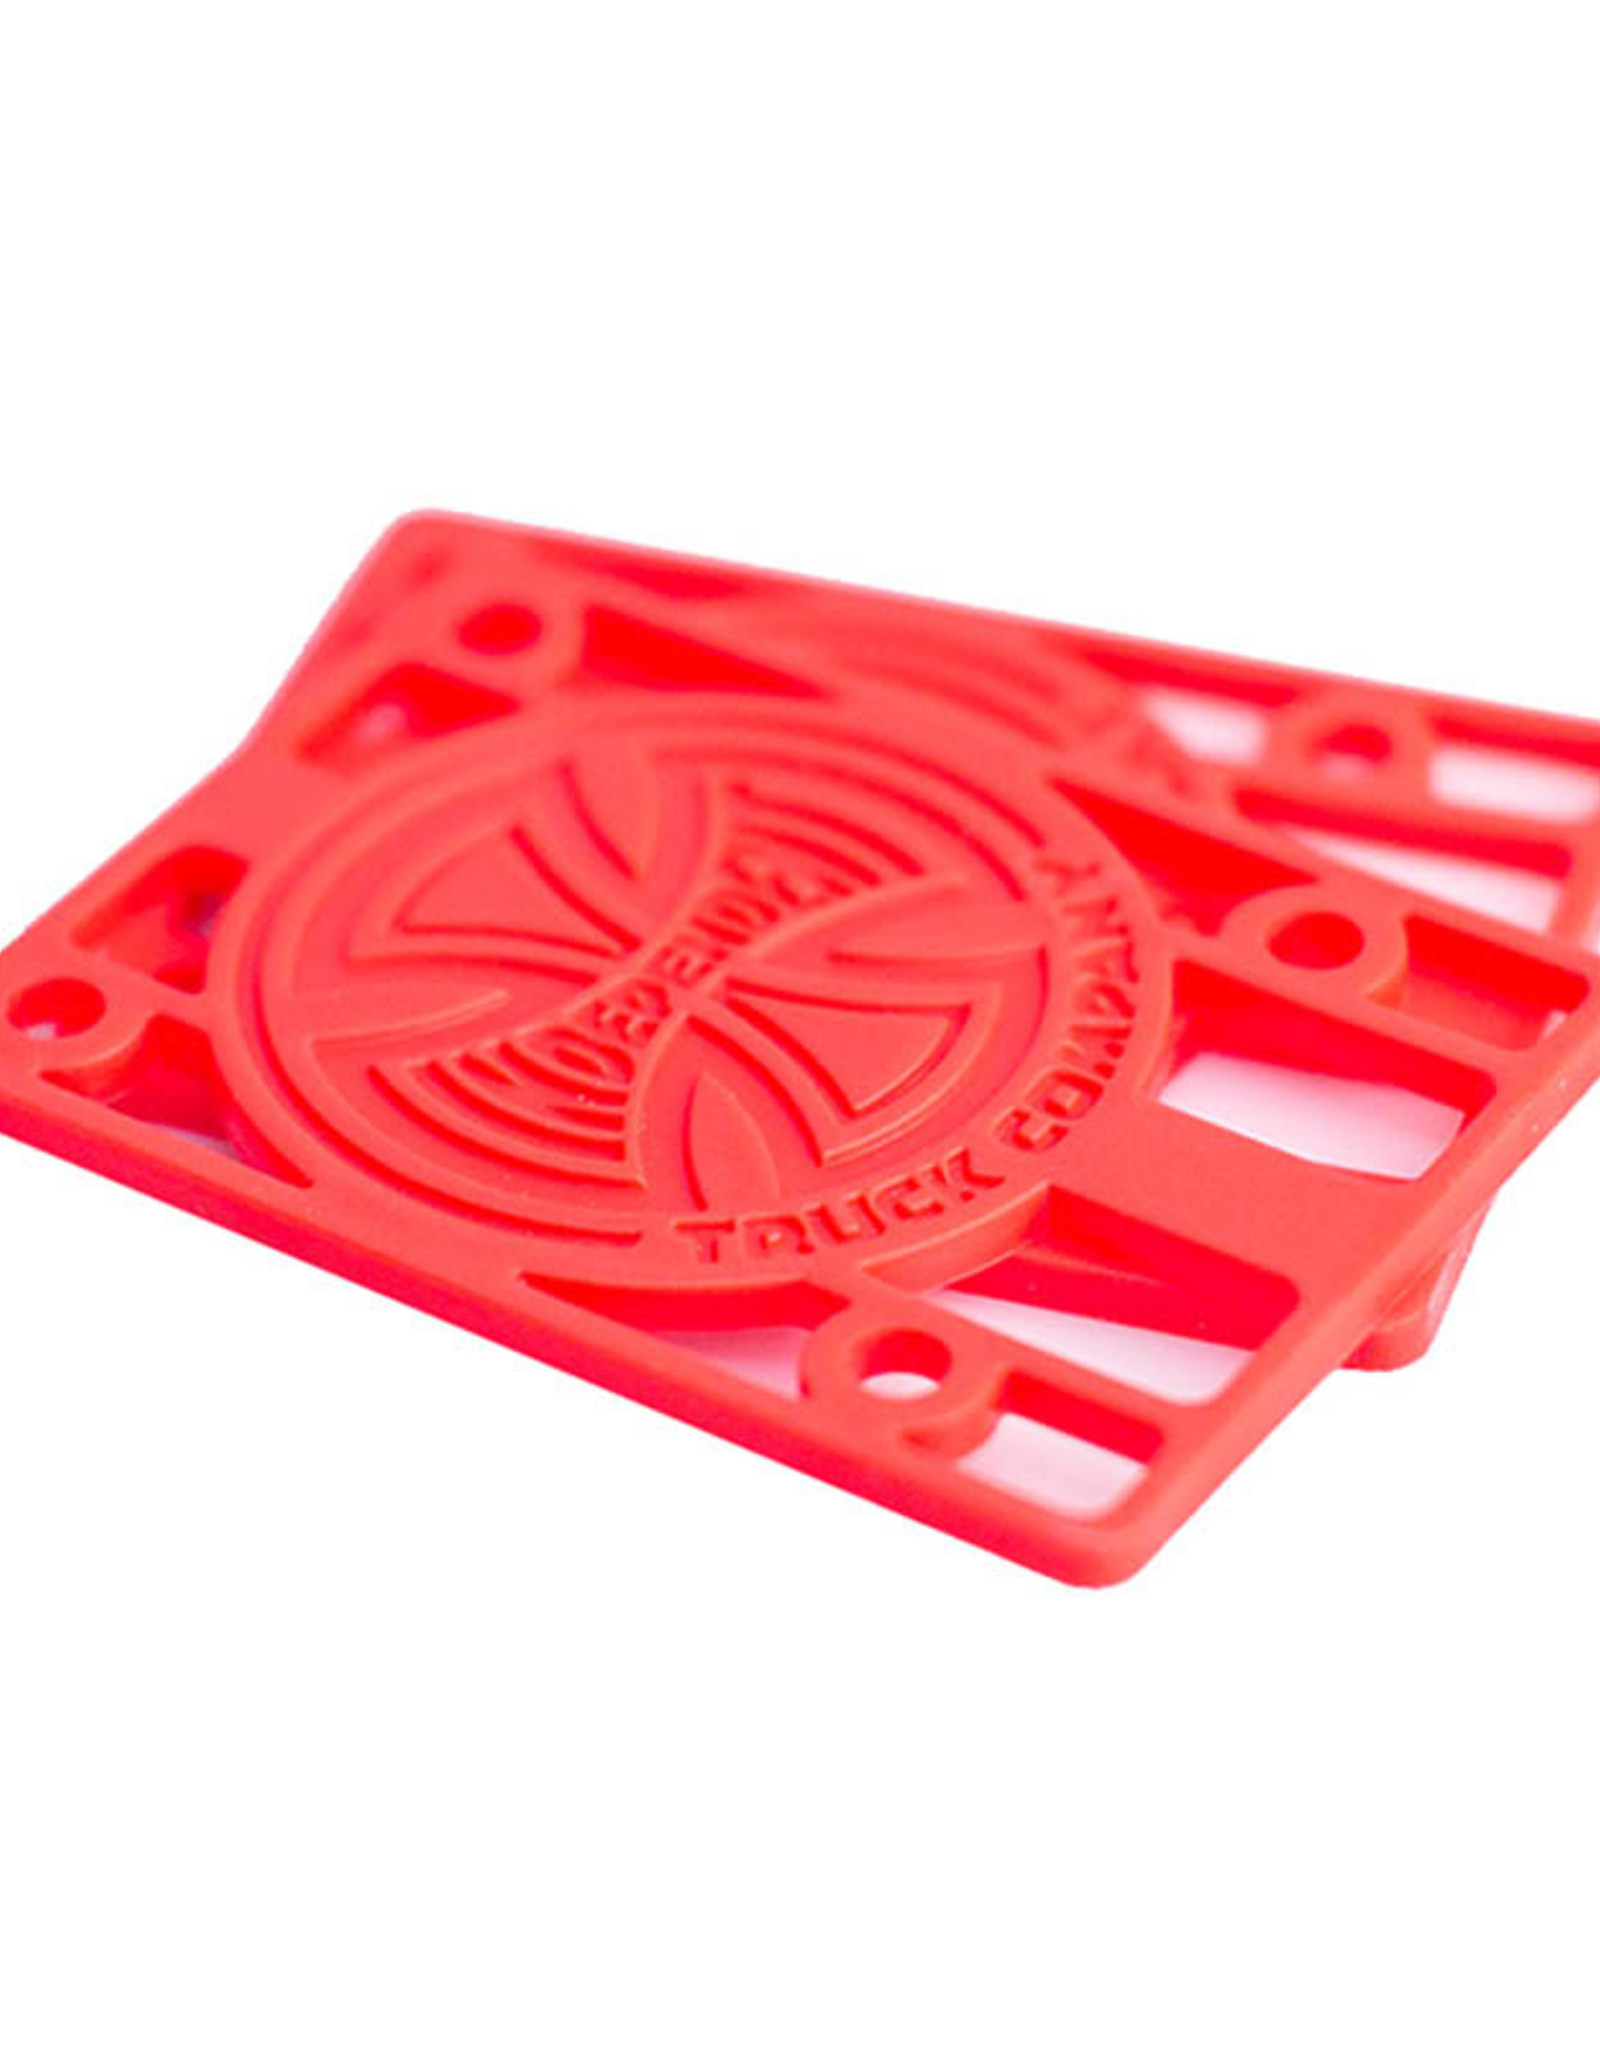 Independent Indy 1/8 Inch Risers Red